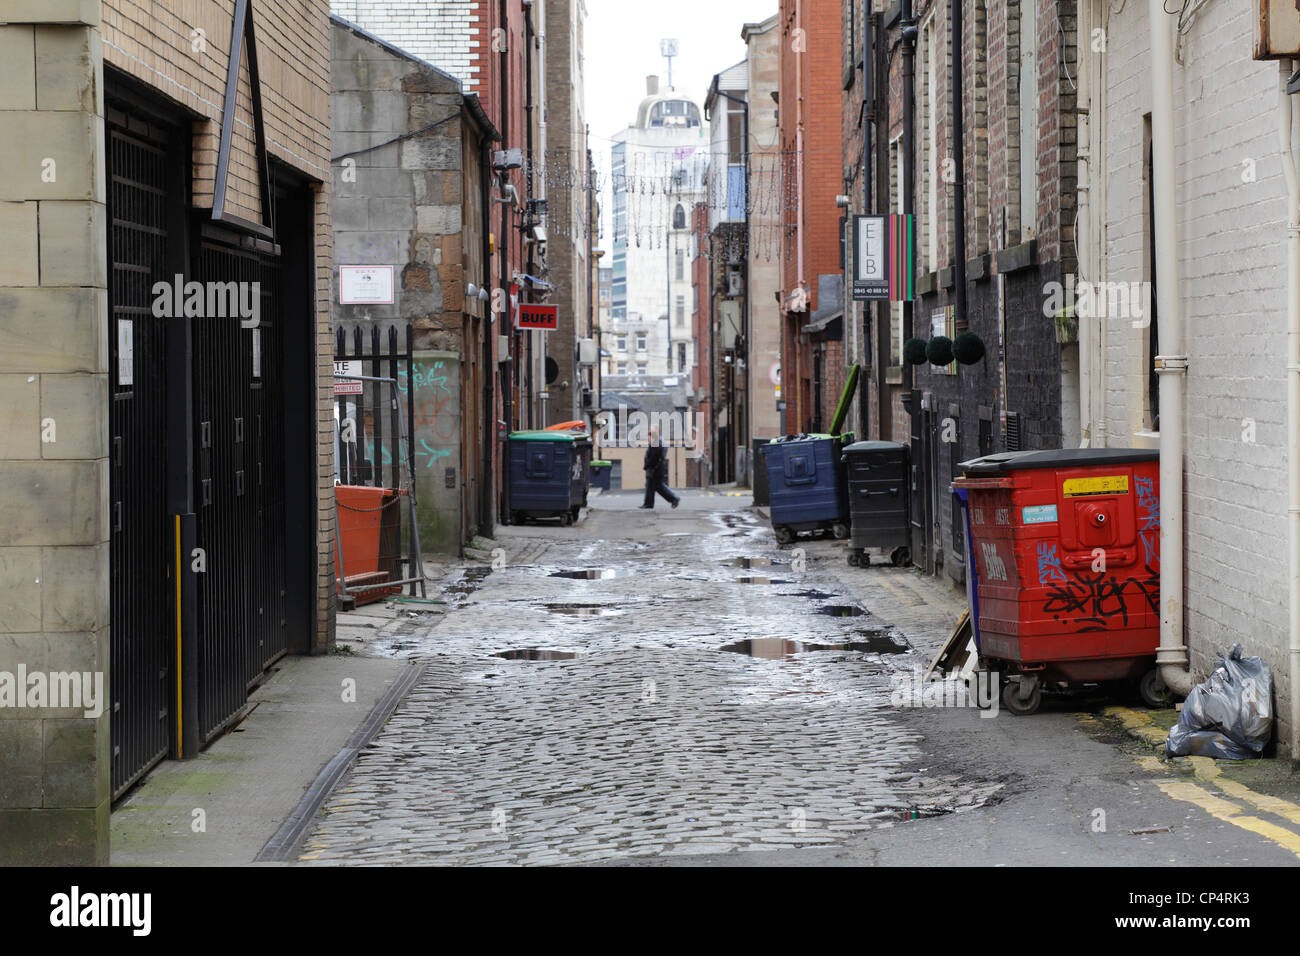 Bath Lane in Glasgow City Centre, Scotland, UK - Stock Image